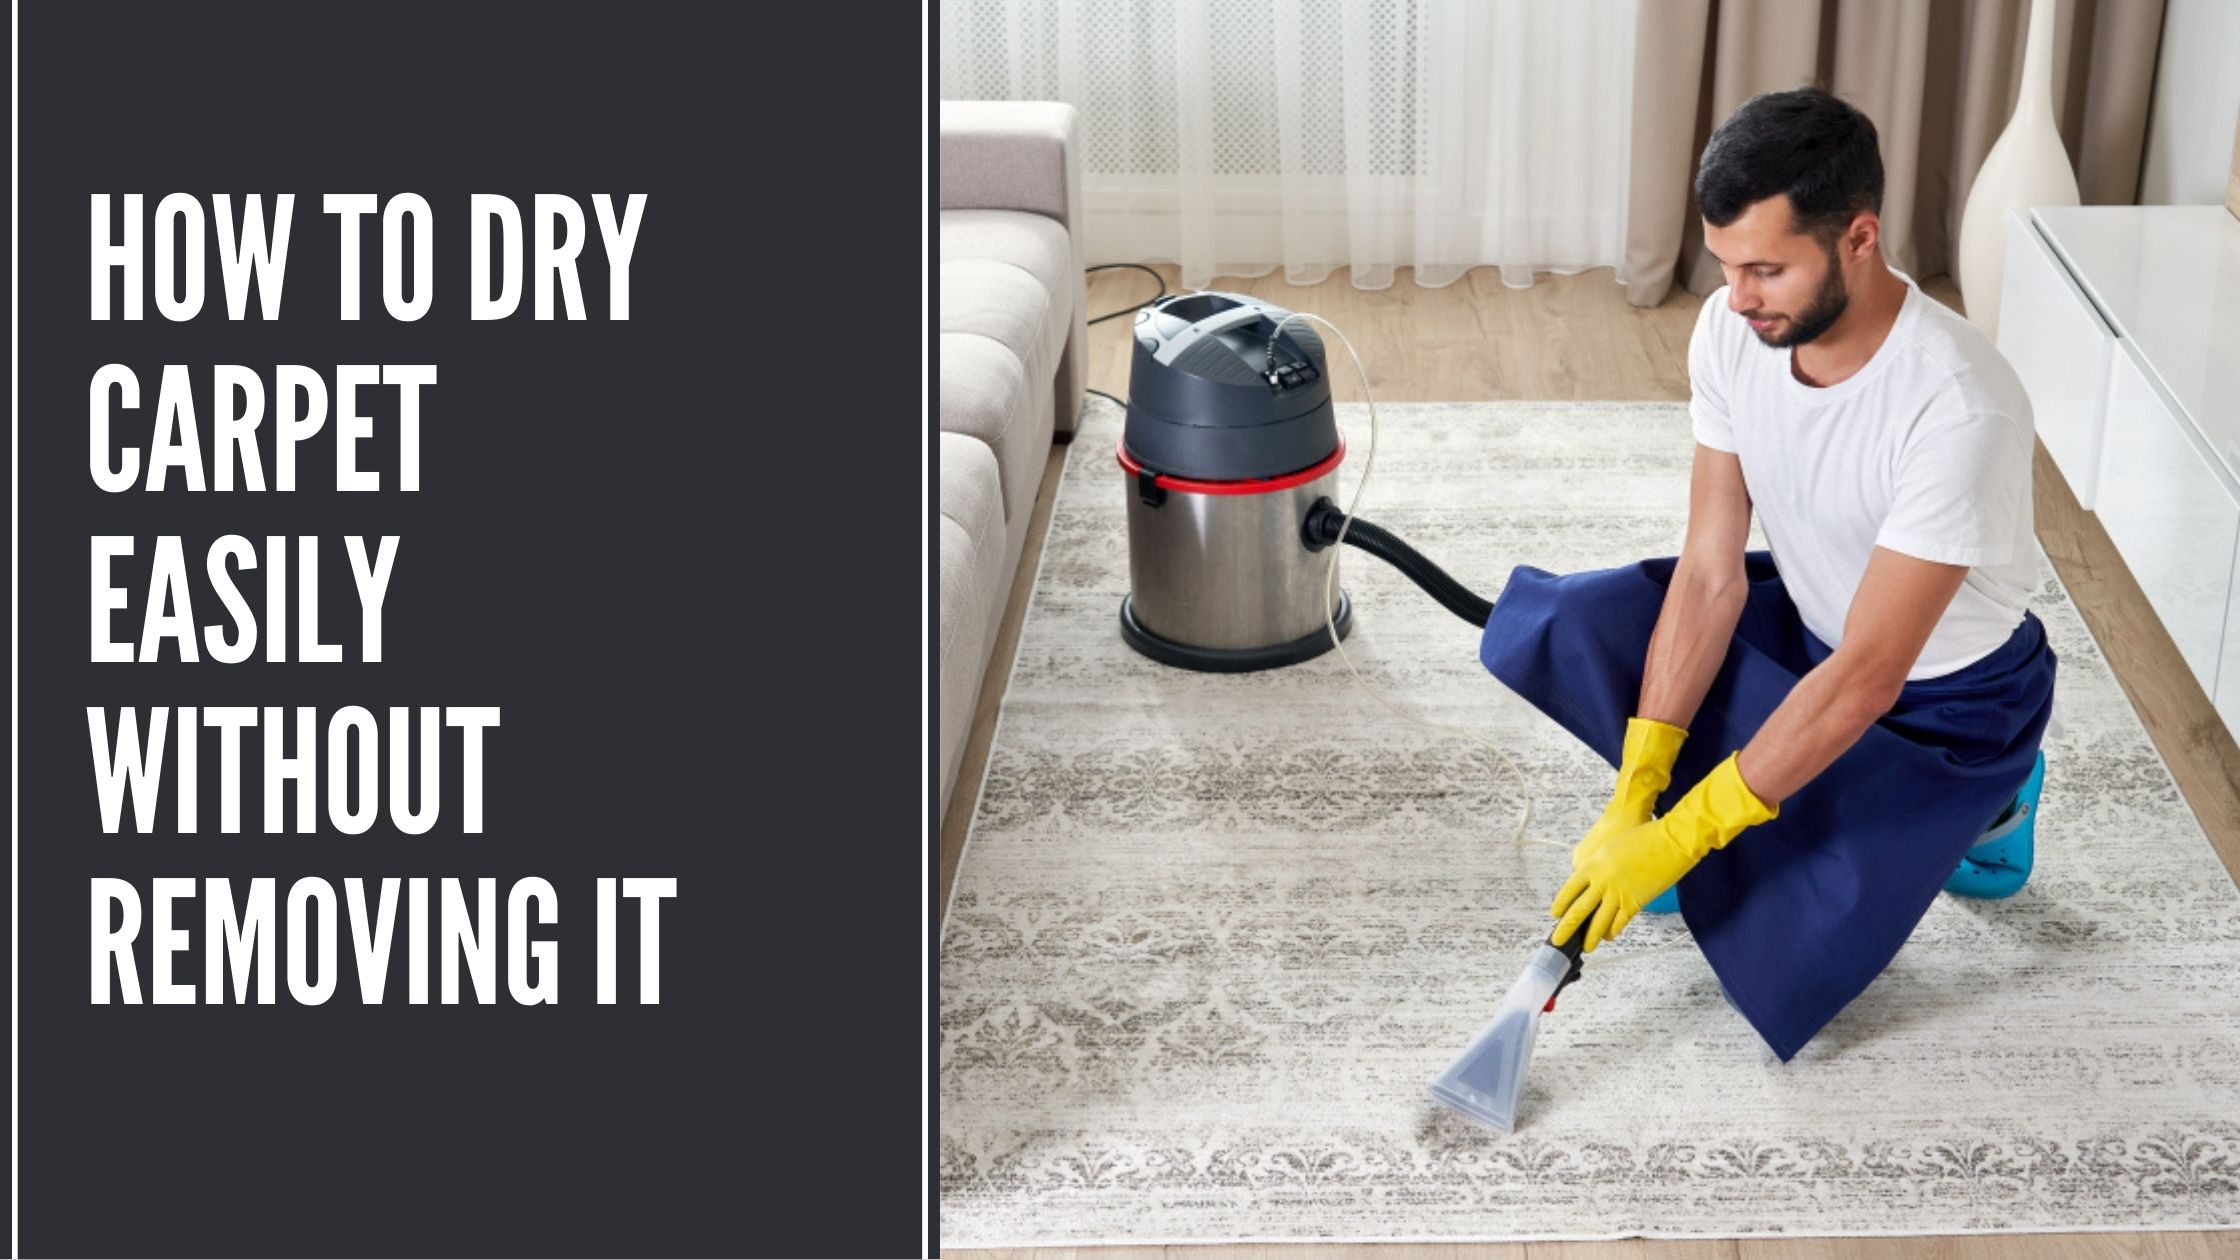 How To Dry Carpet Easily Without Removing It